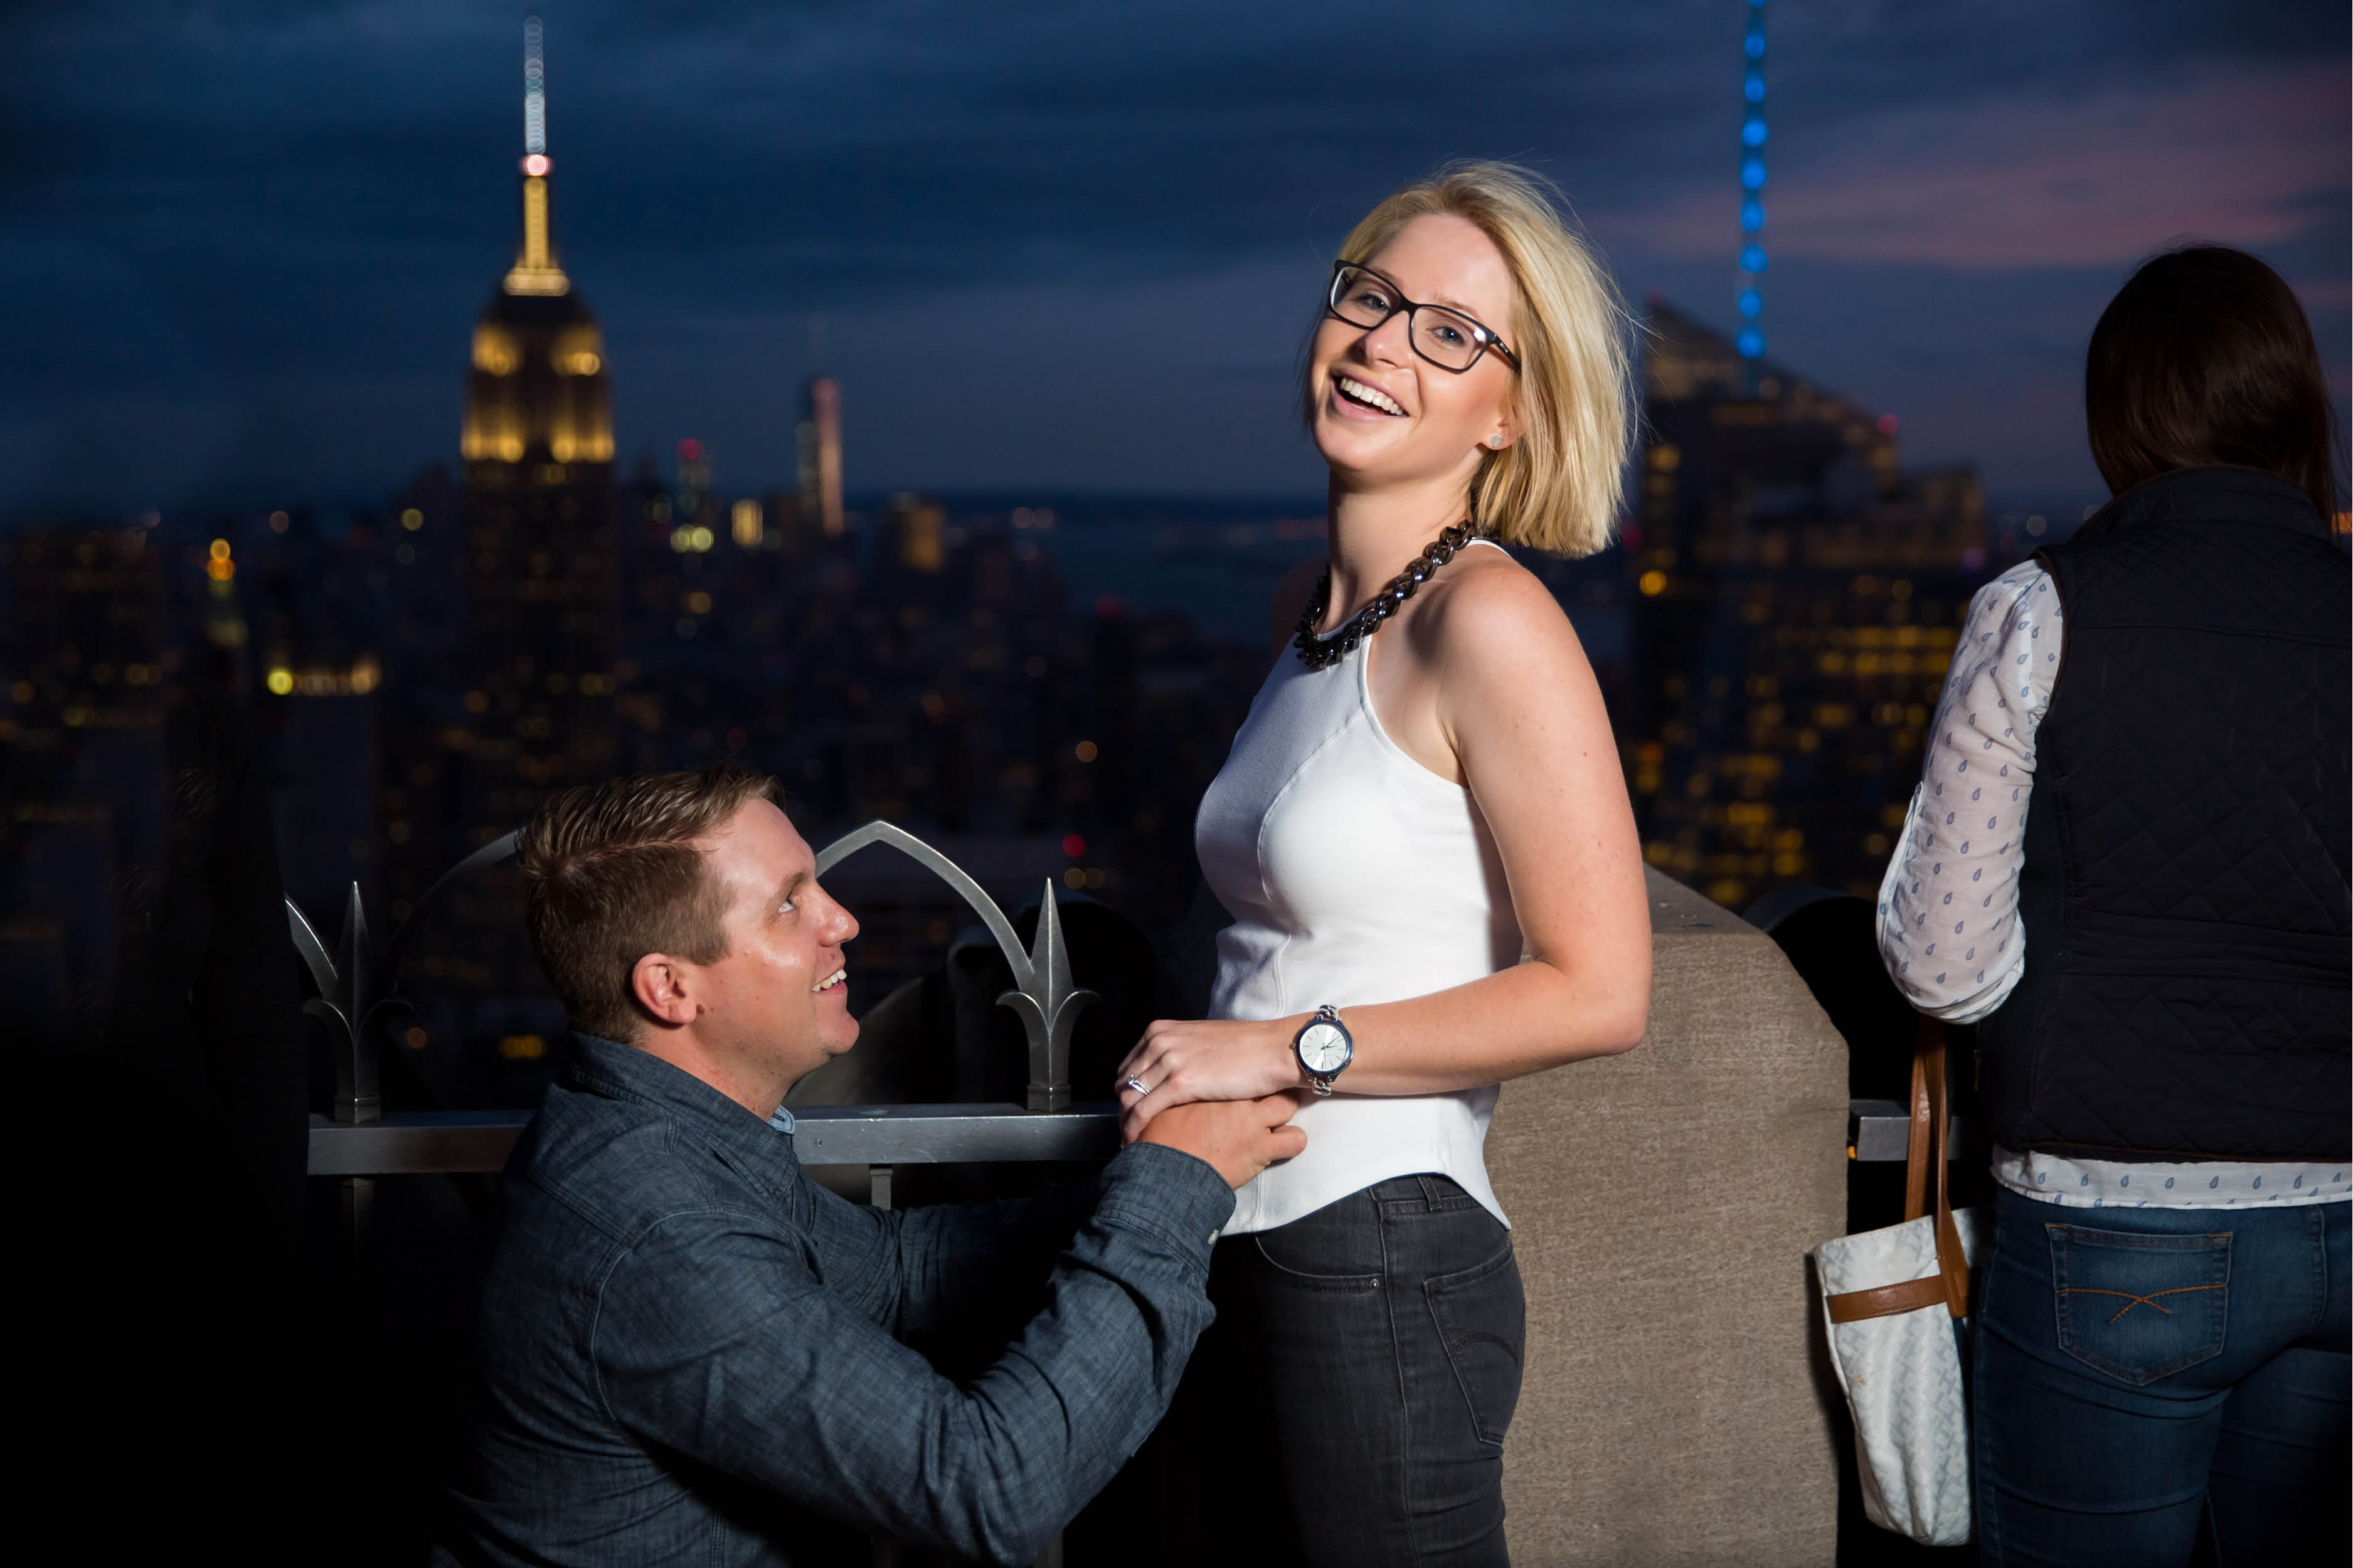 Emma_cleary_photography top of the rock engagement14